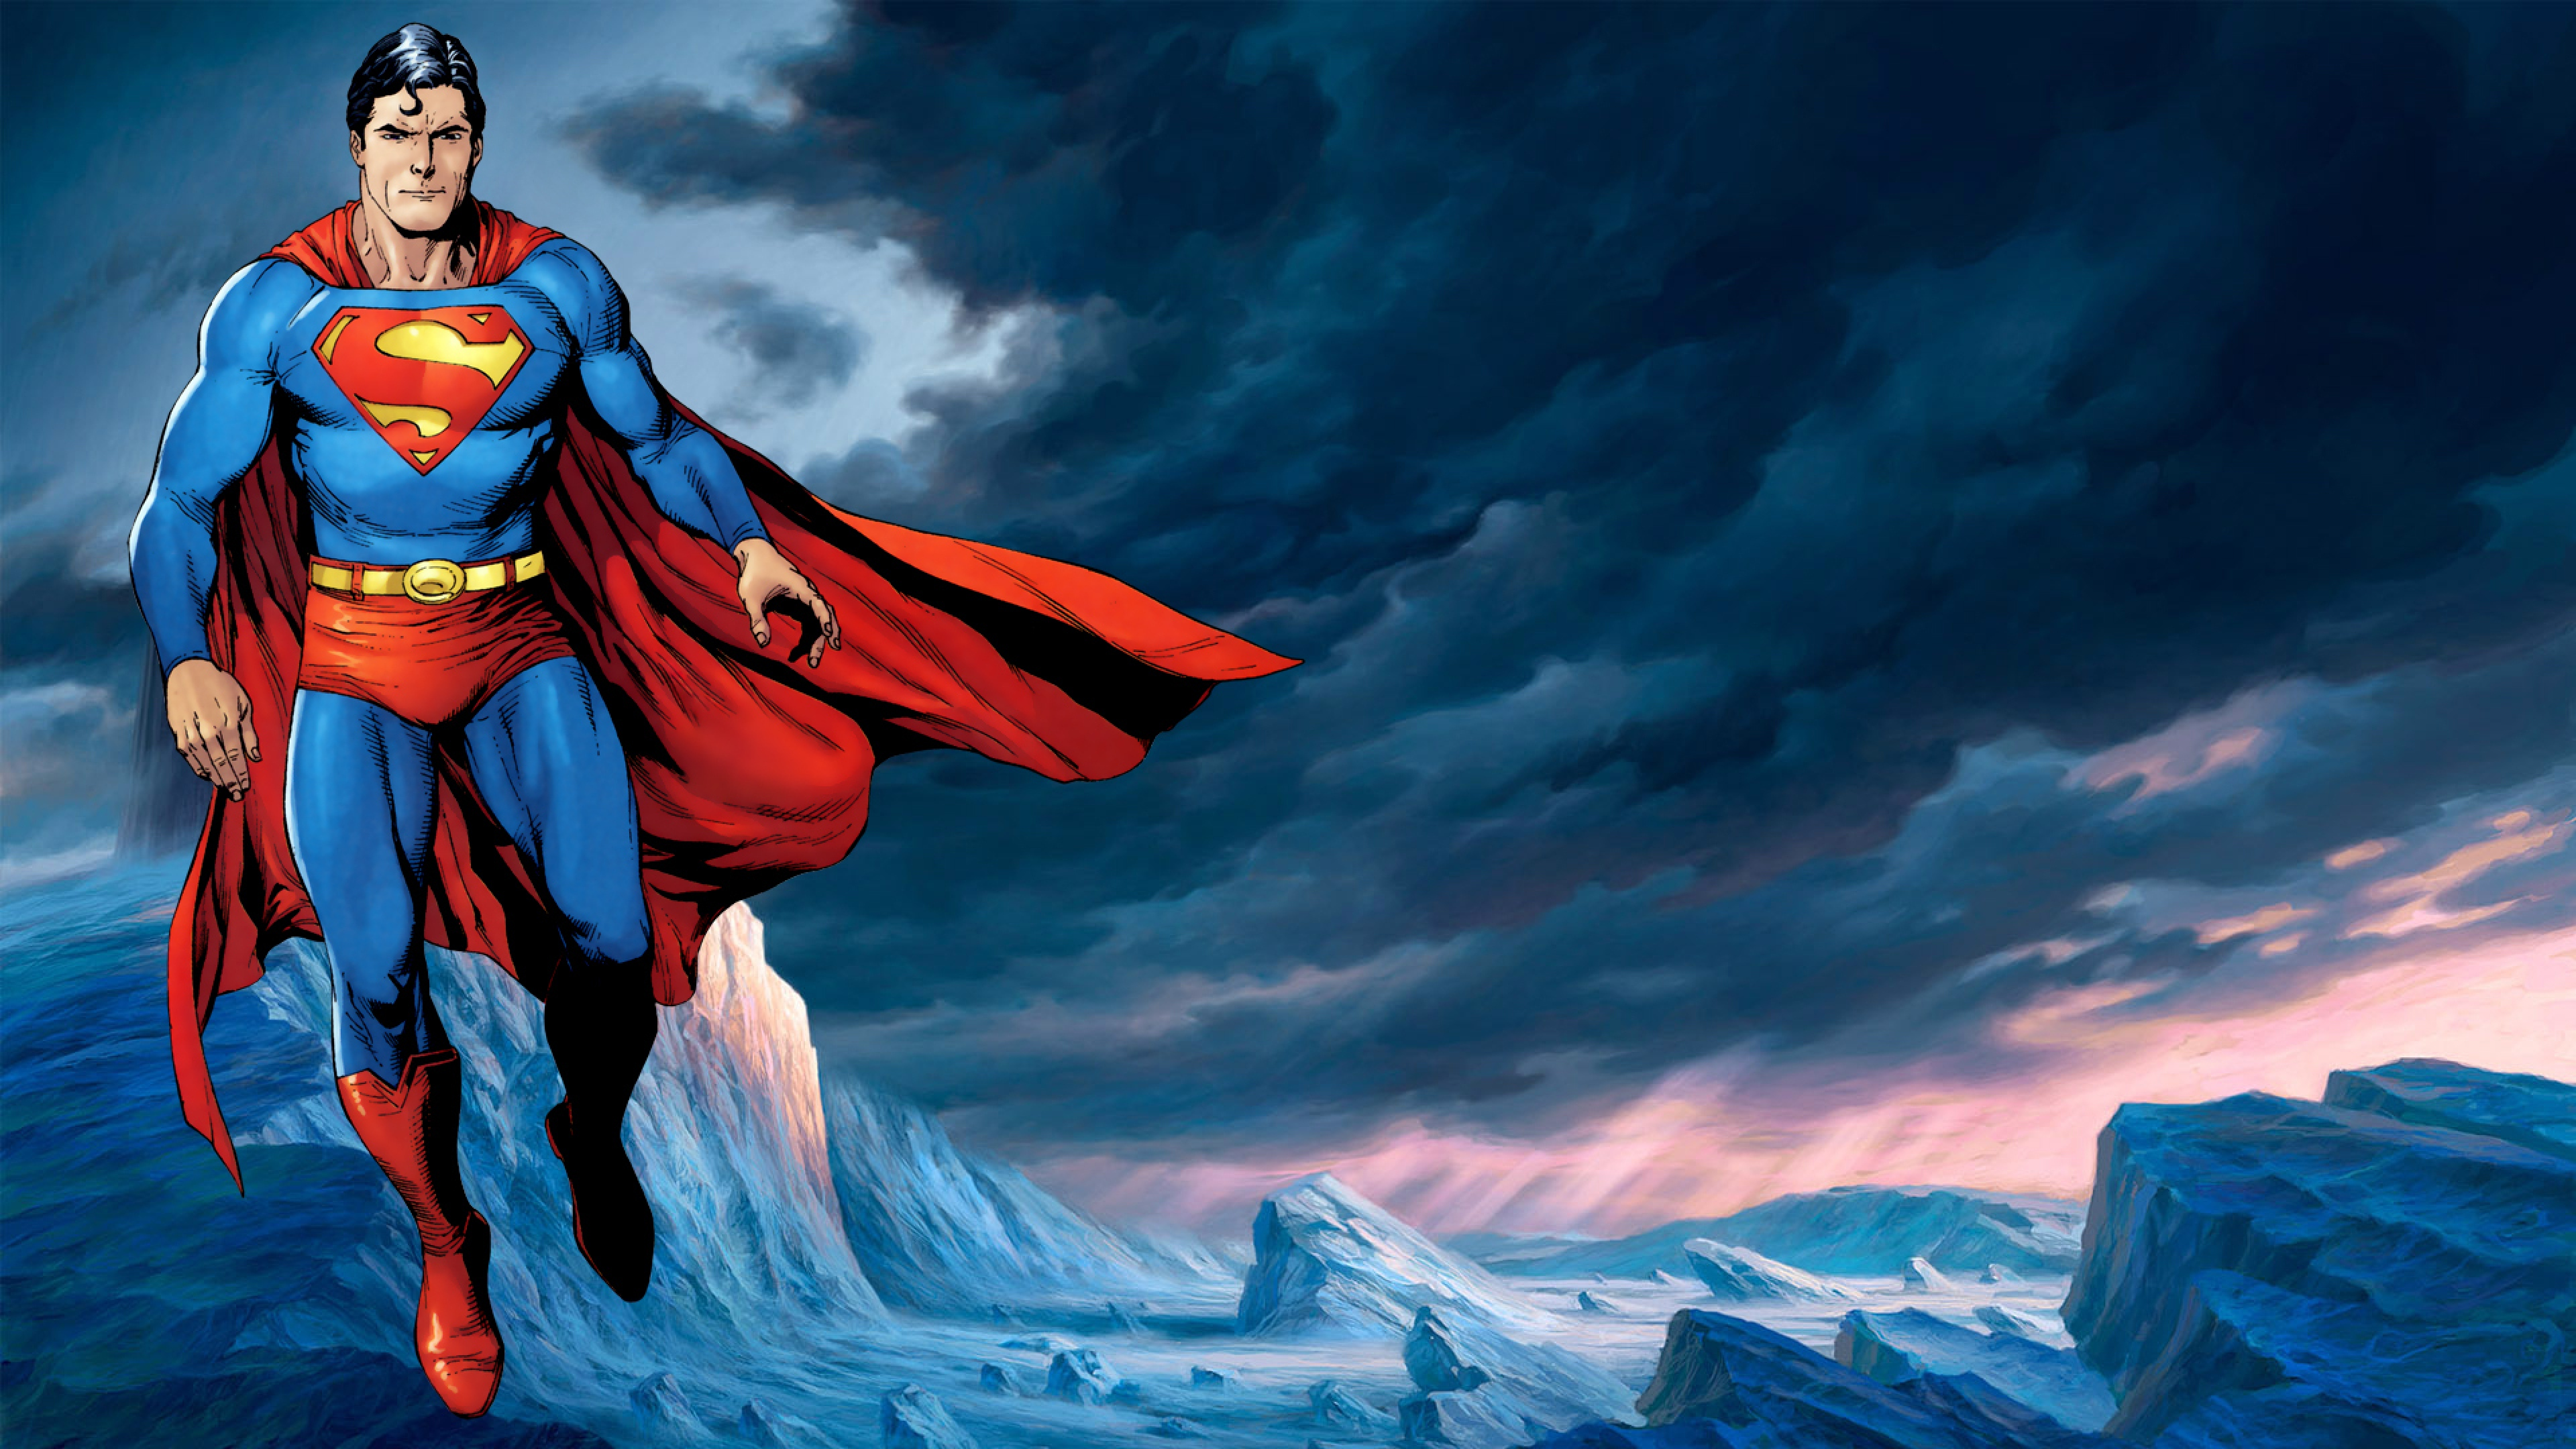 Wallpaper superman action comics dc comics HD   HD Wallpapers Ultra 3840x2160